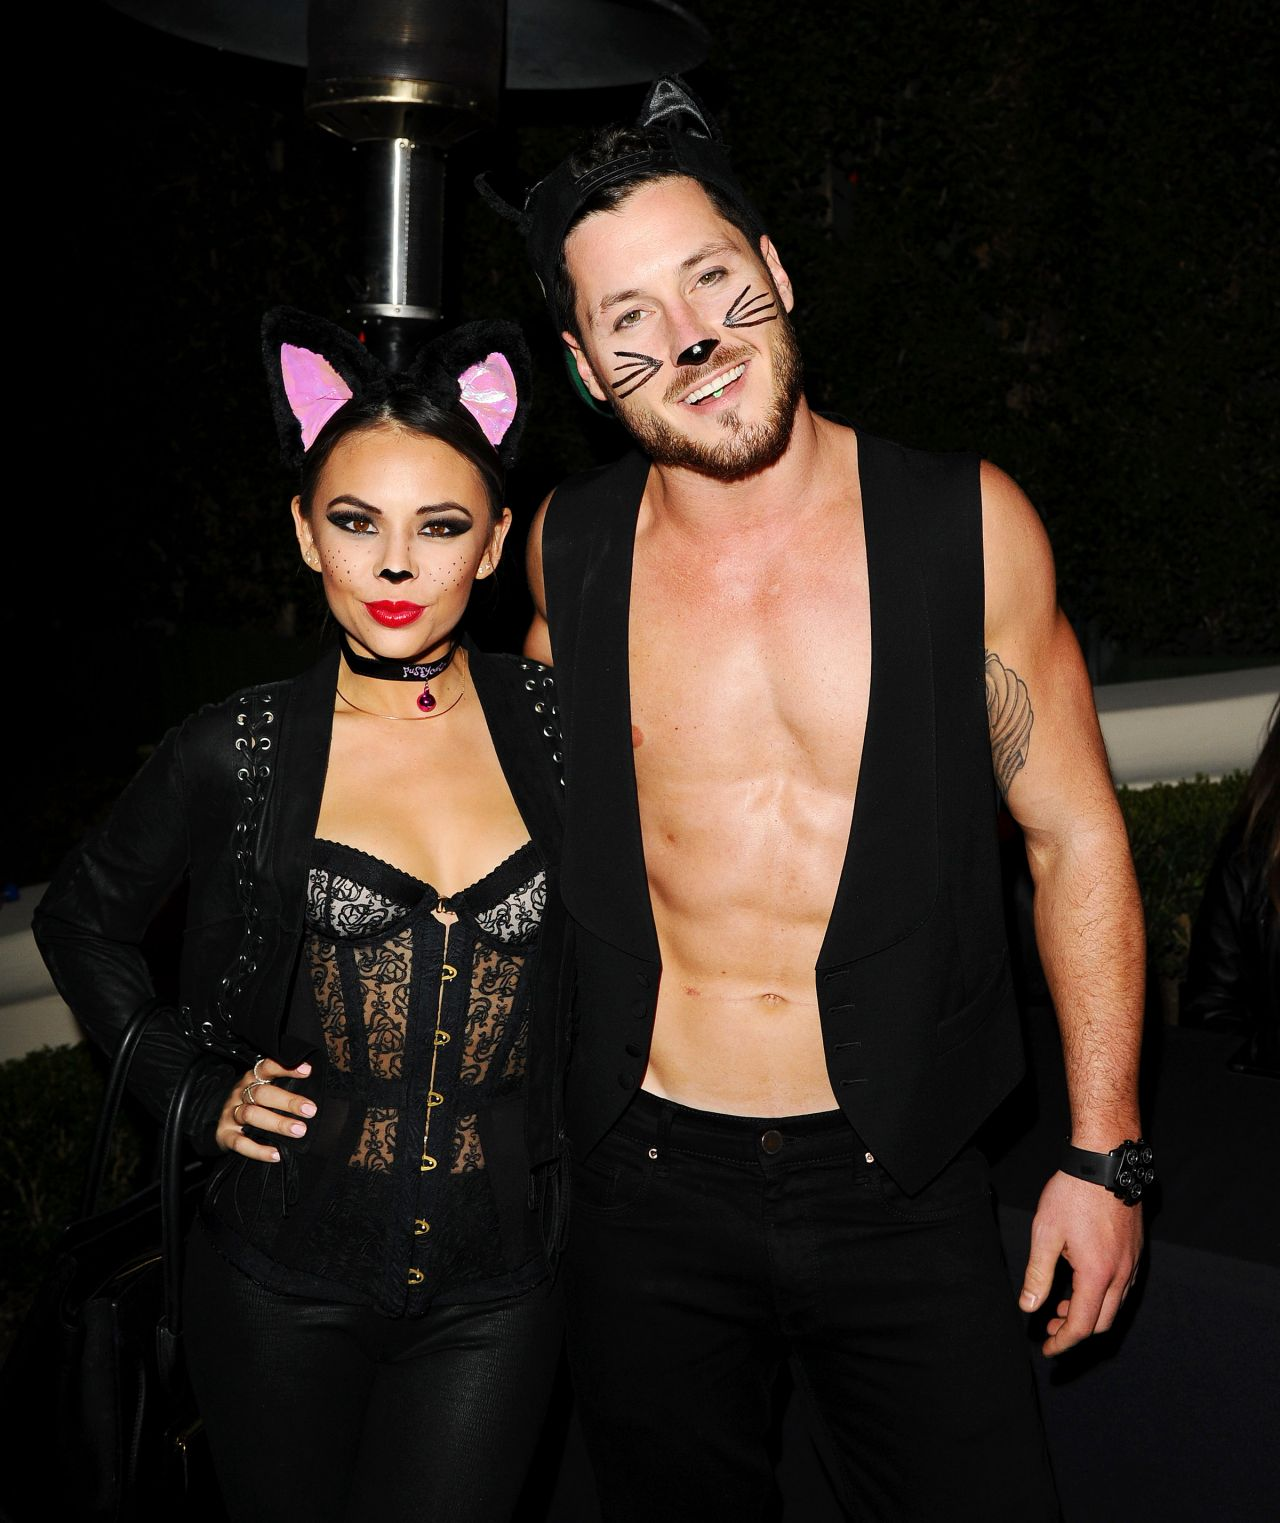 Parrish Arrives at the Casamigos 2014 Halloween Party